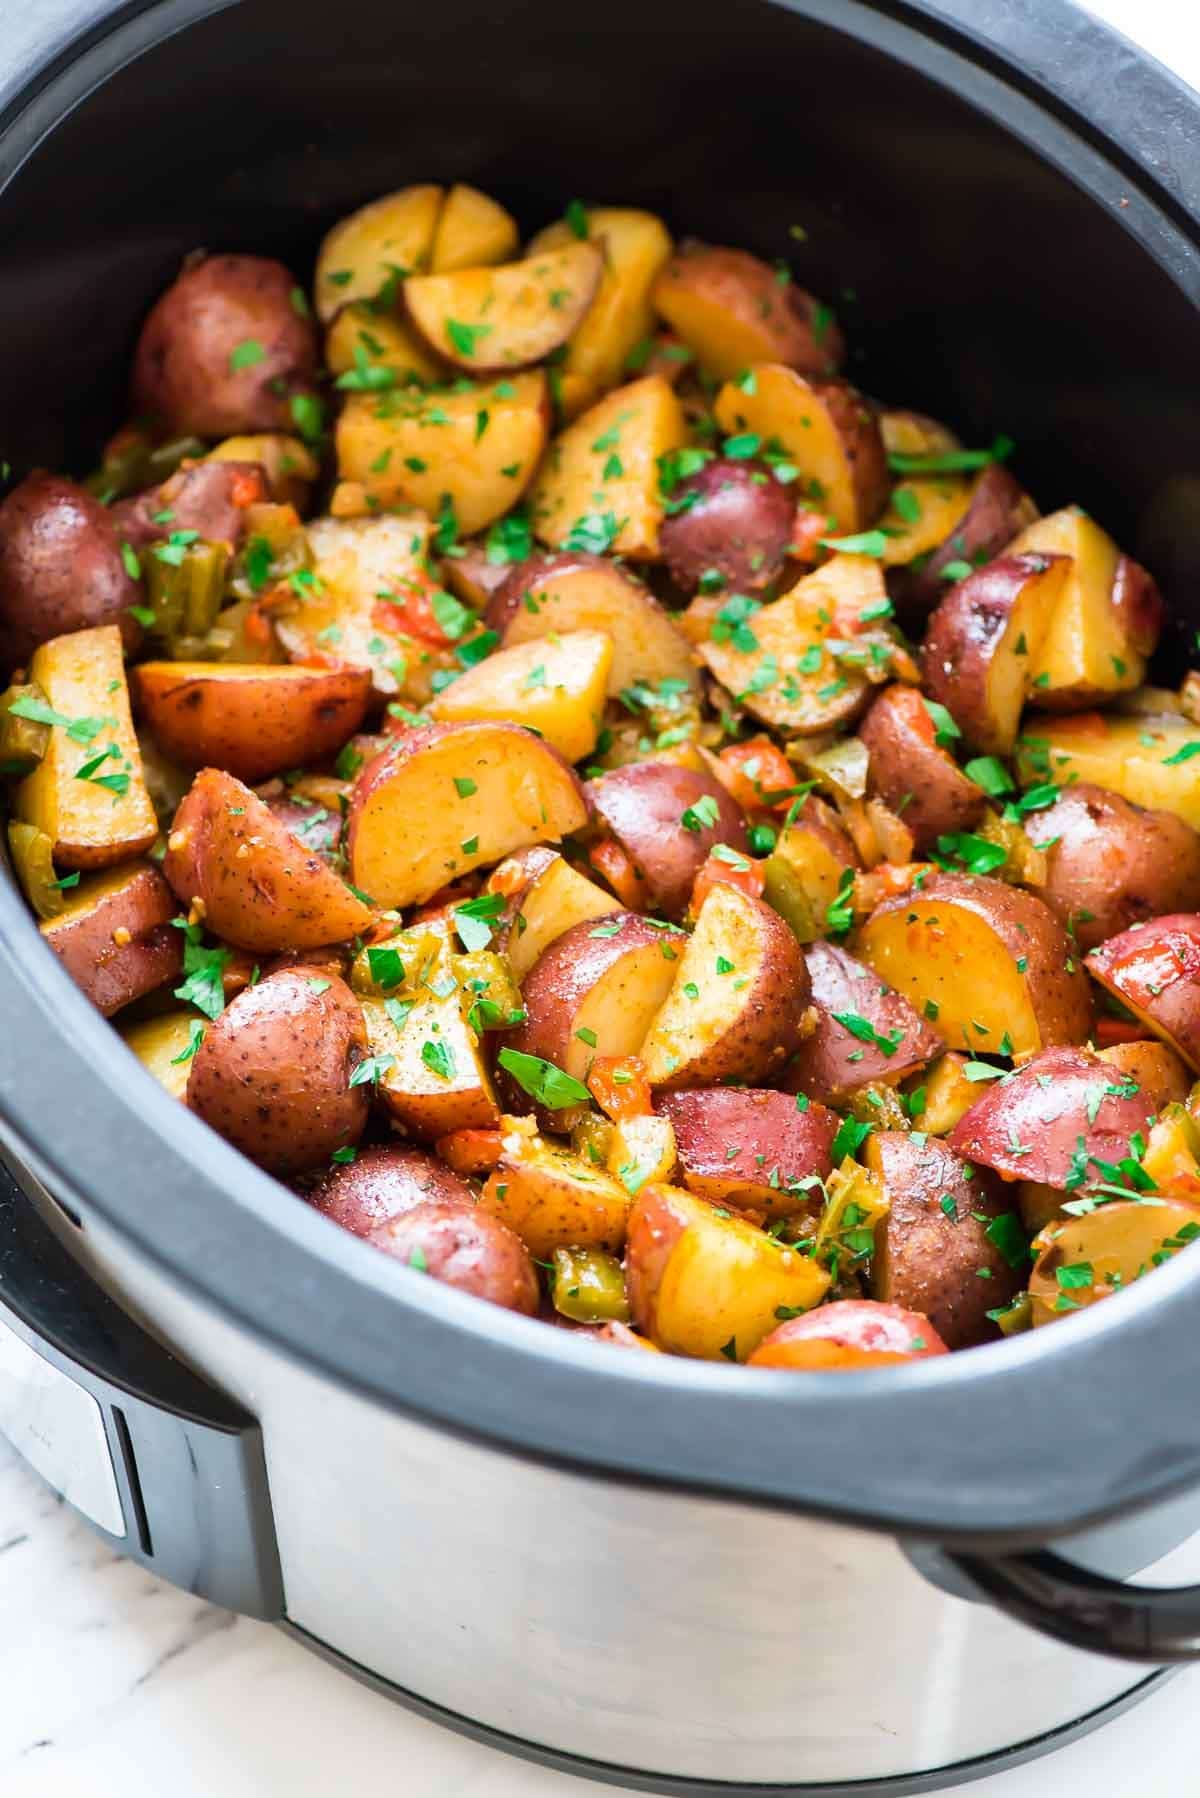 crockpot breakfast potatoes | overnight crockpot breakfast | well